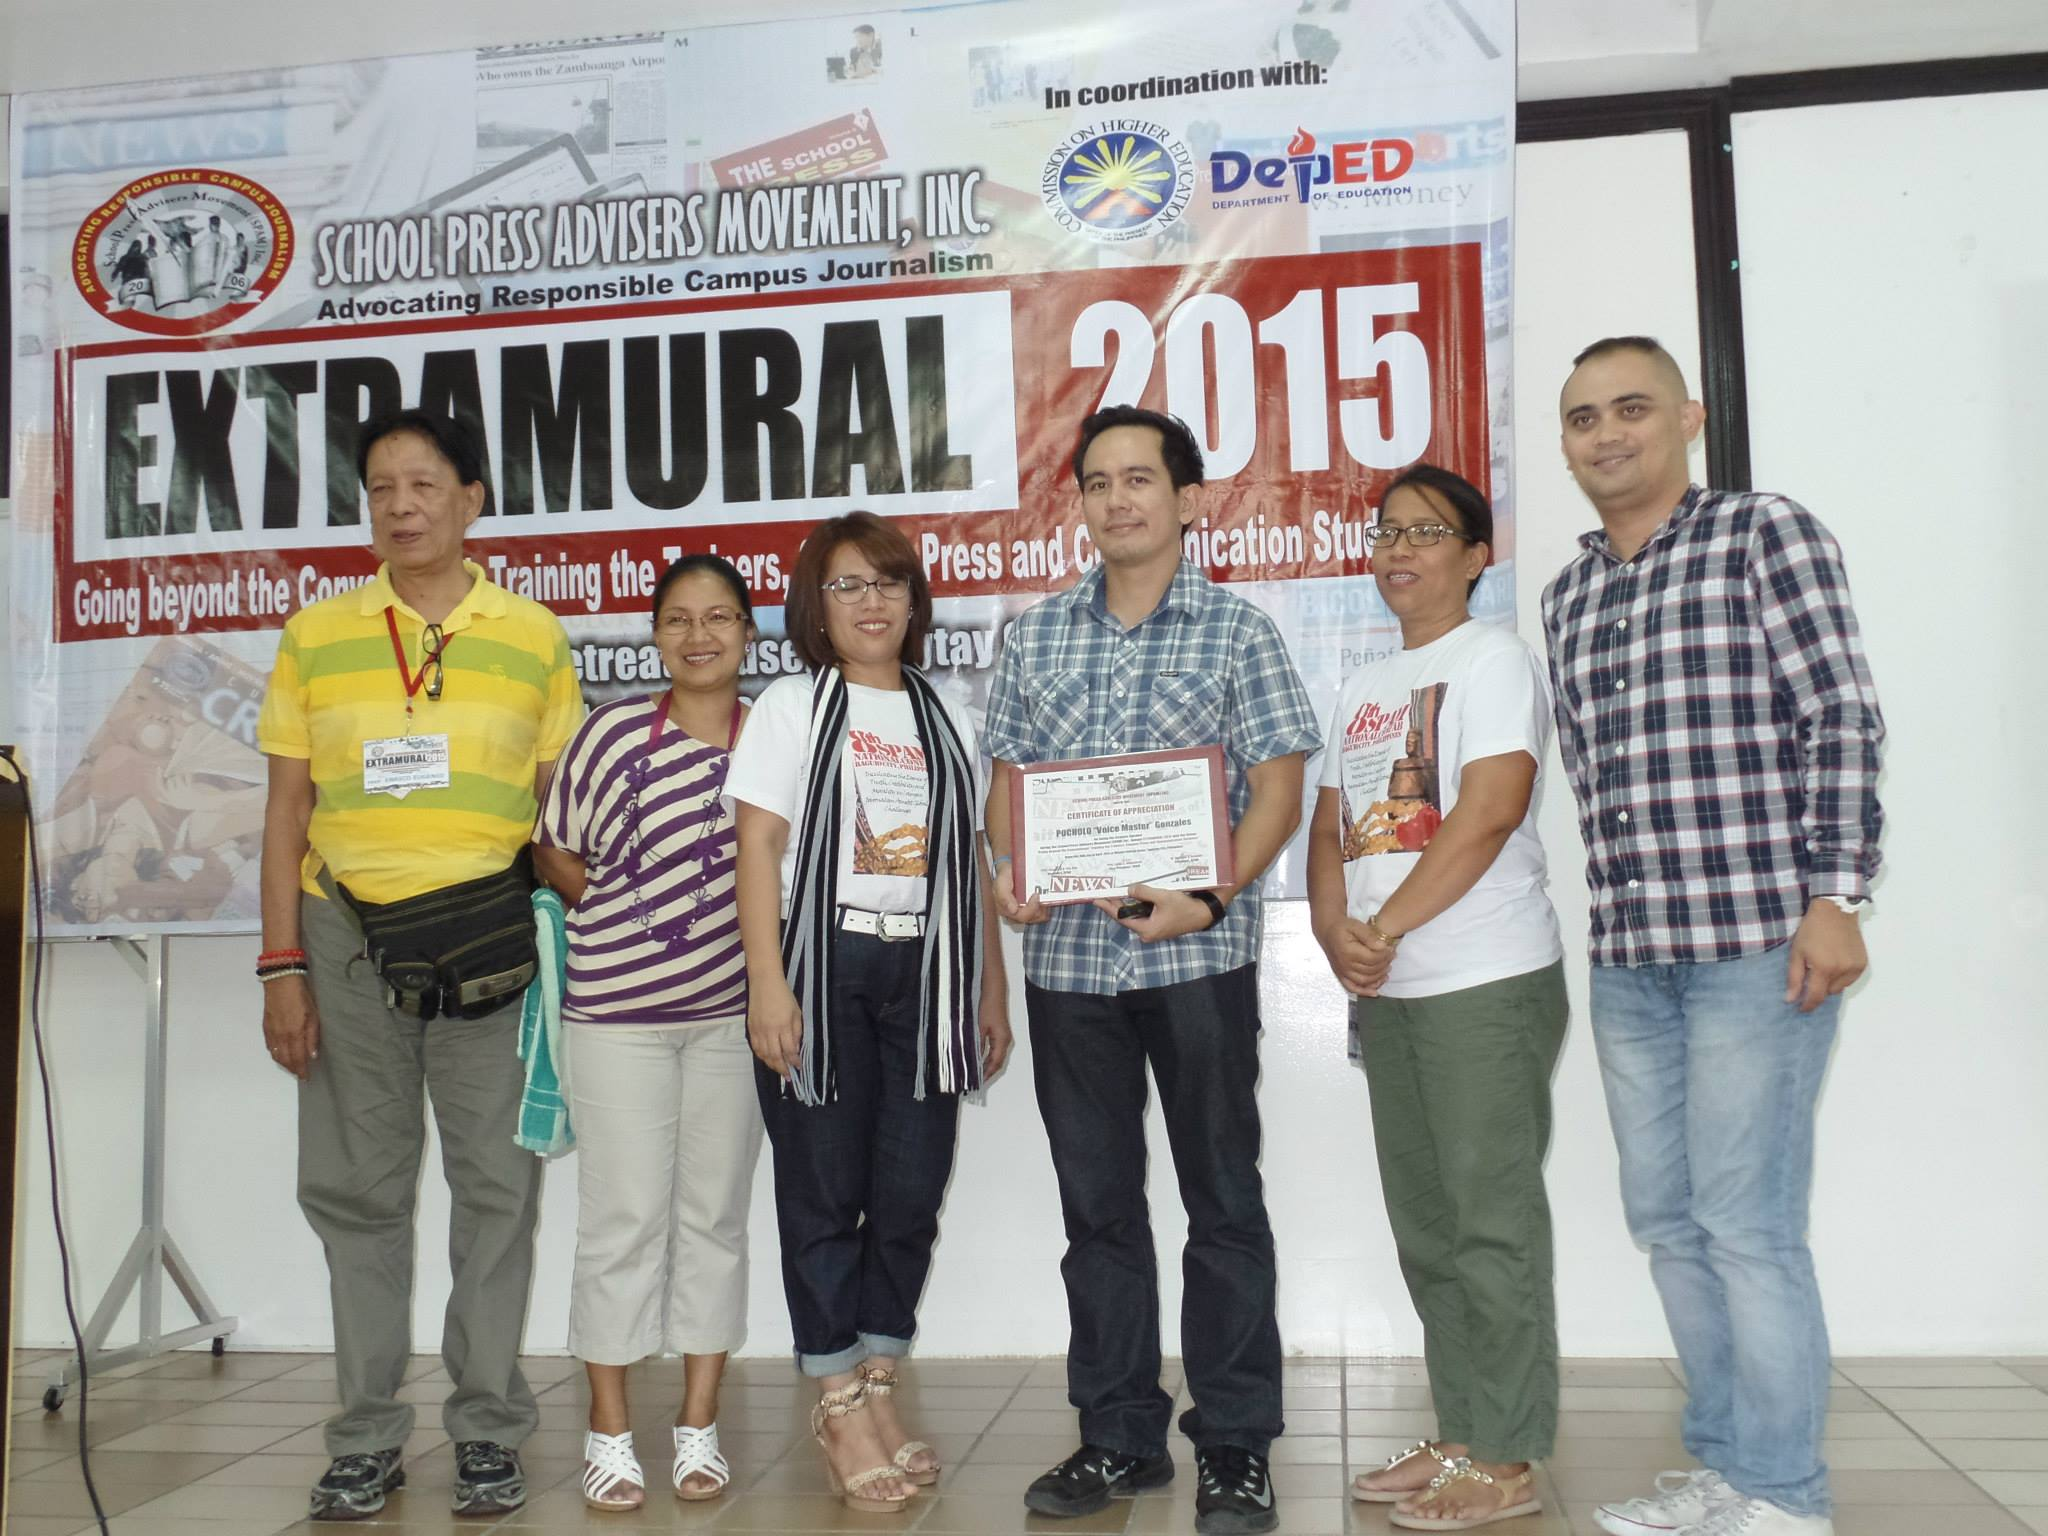 The VoiceMaster as Keynote Speaker in Extramural 2015